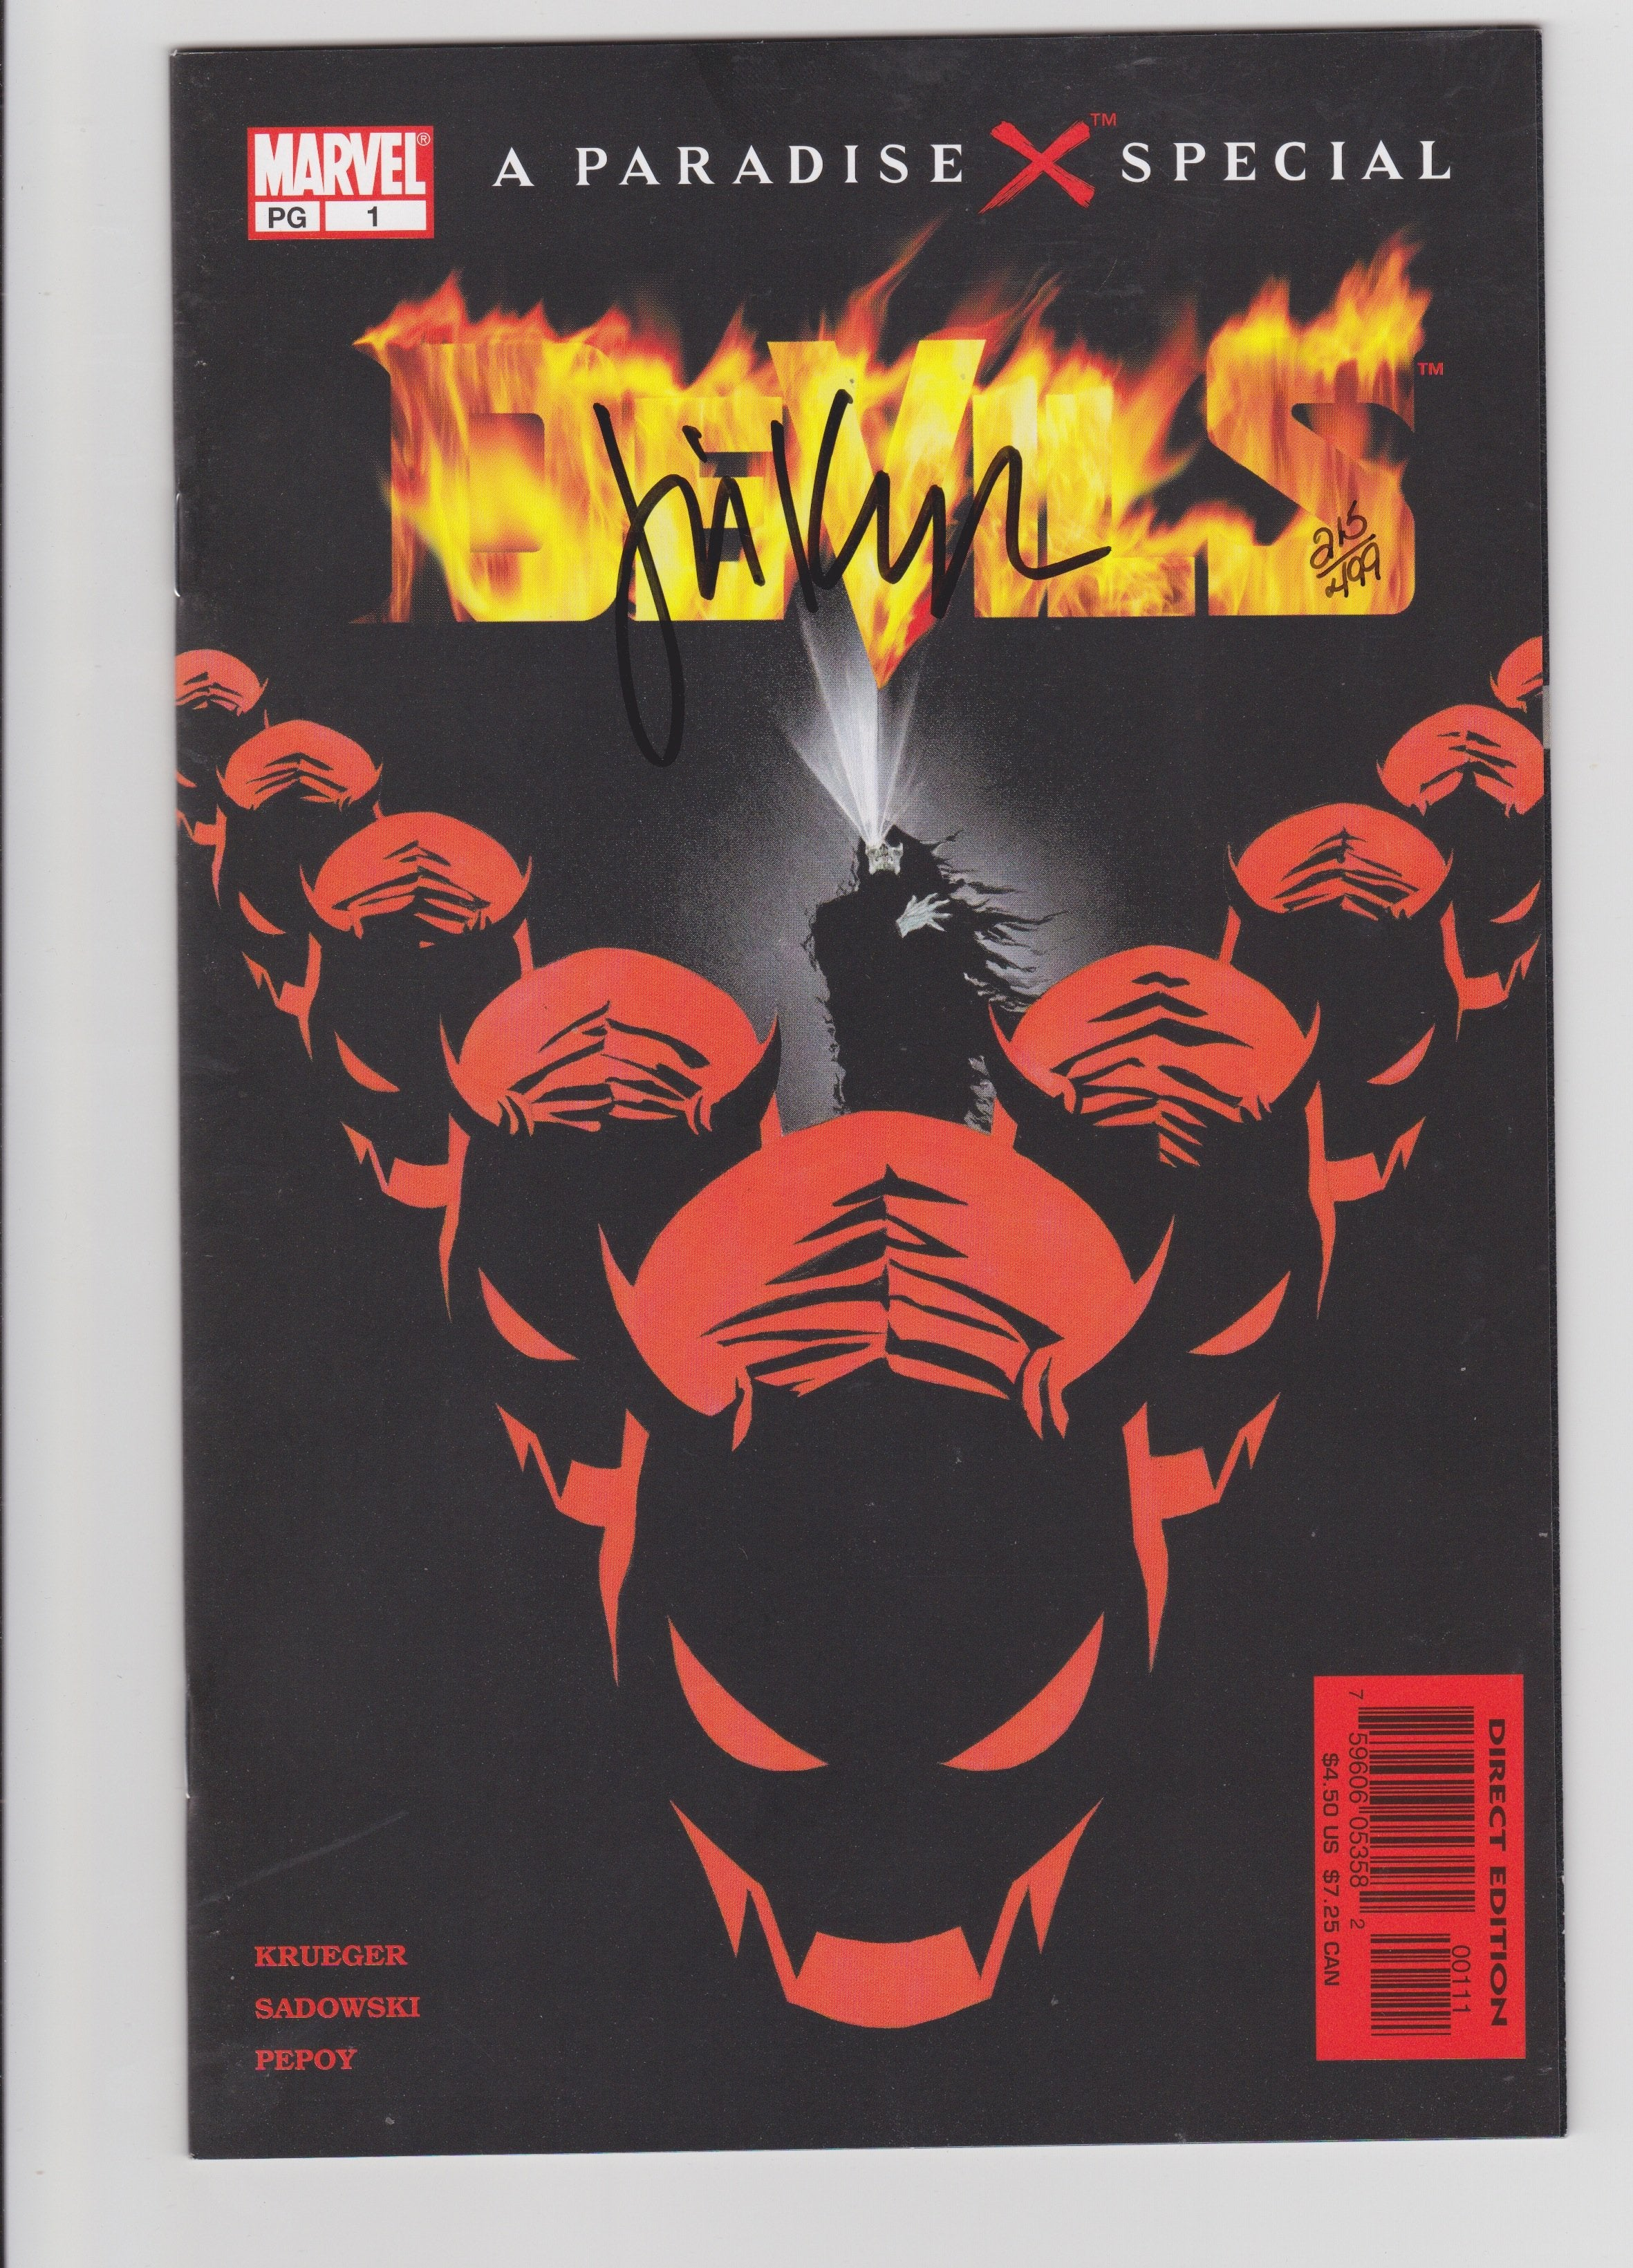 PARADISE X: DEVILS #1 SIGNED BY JIM KRUEGER